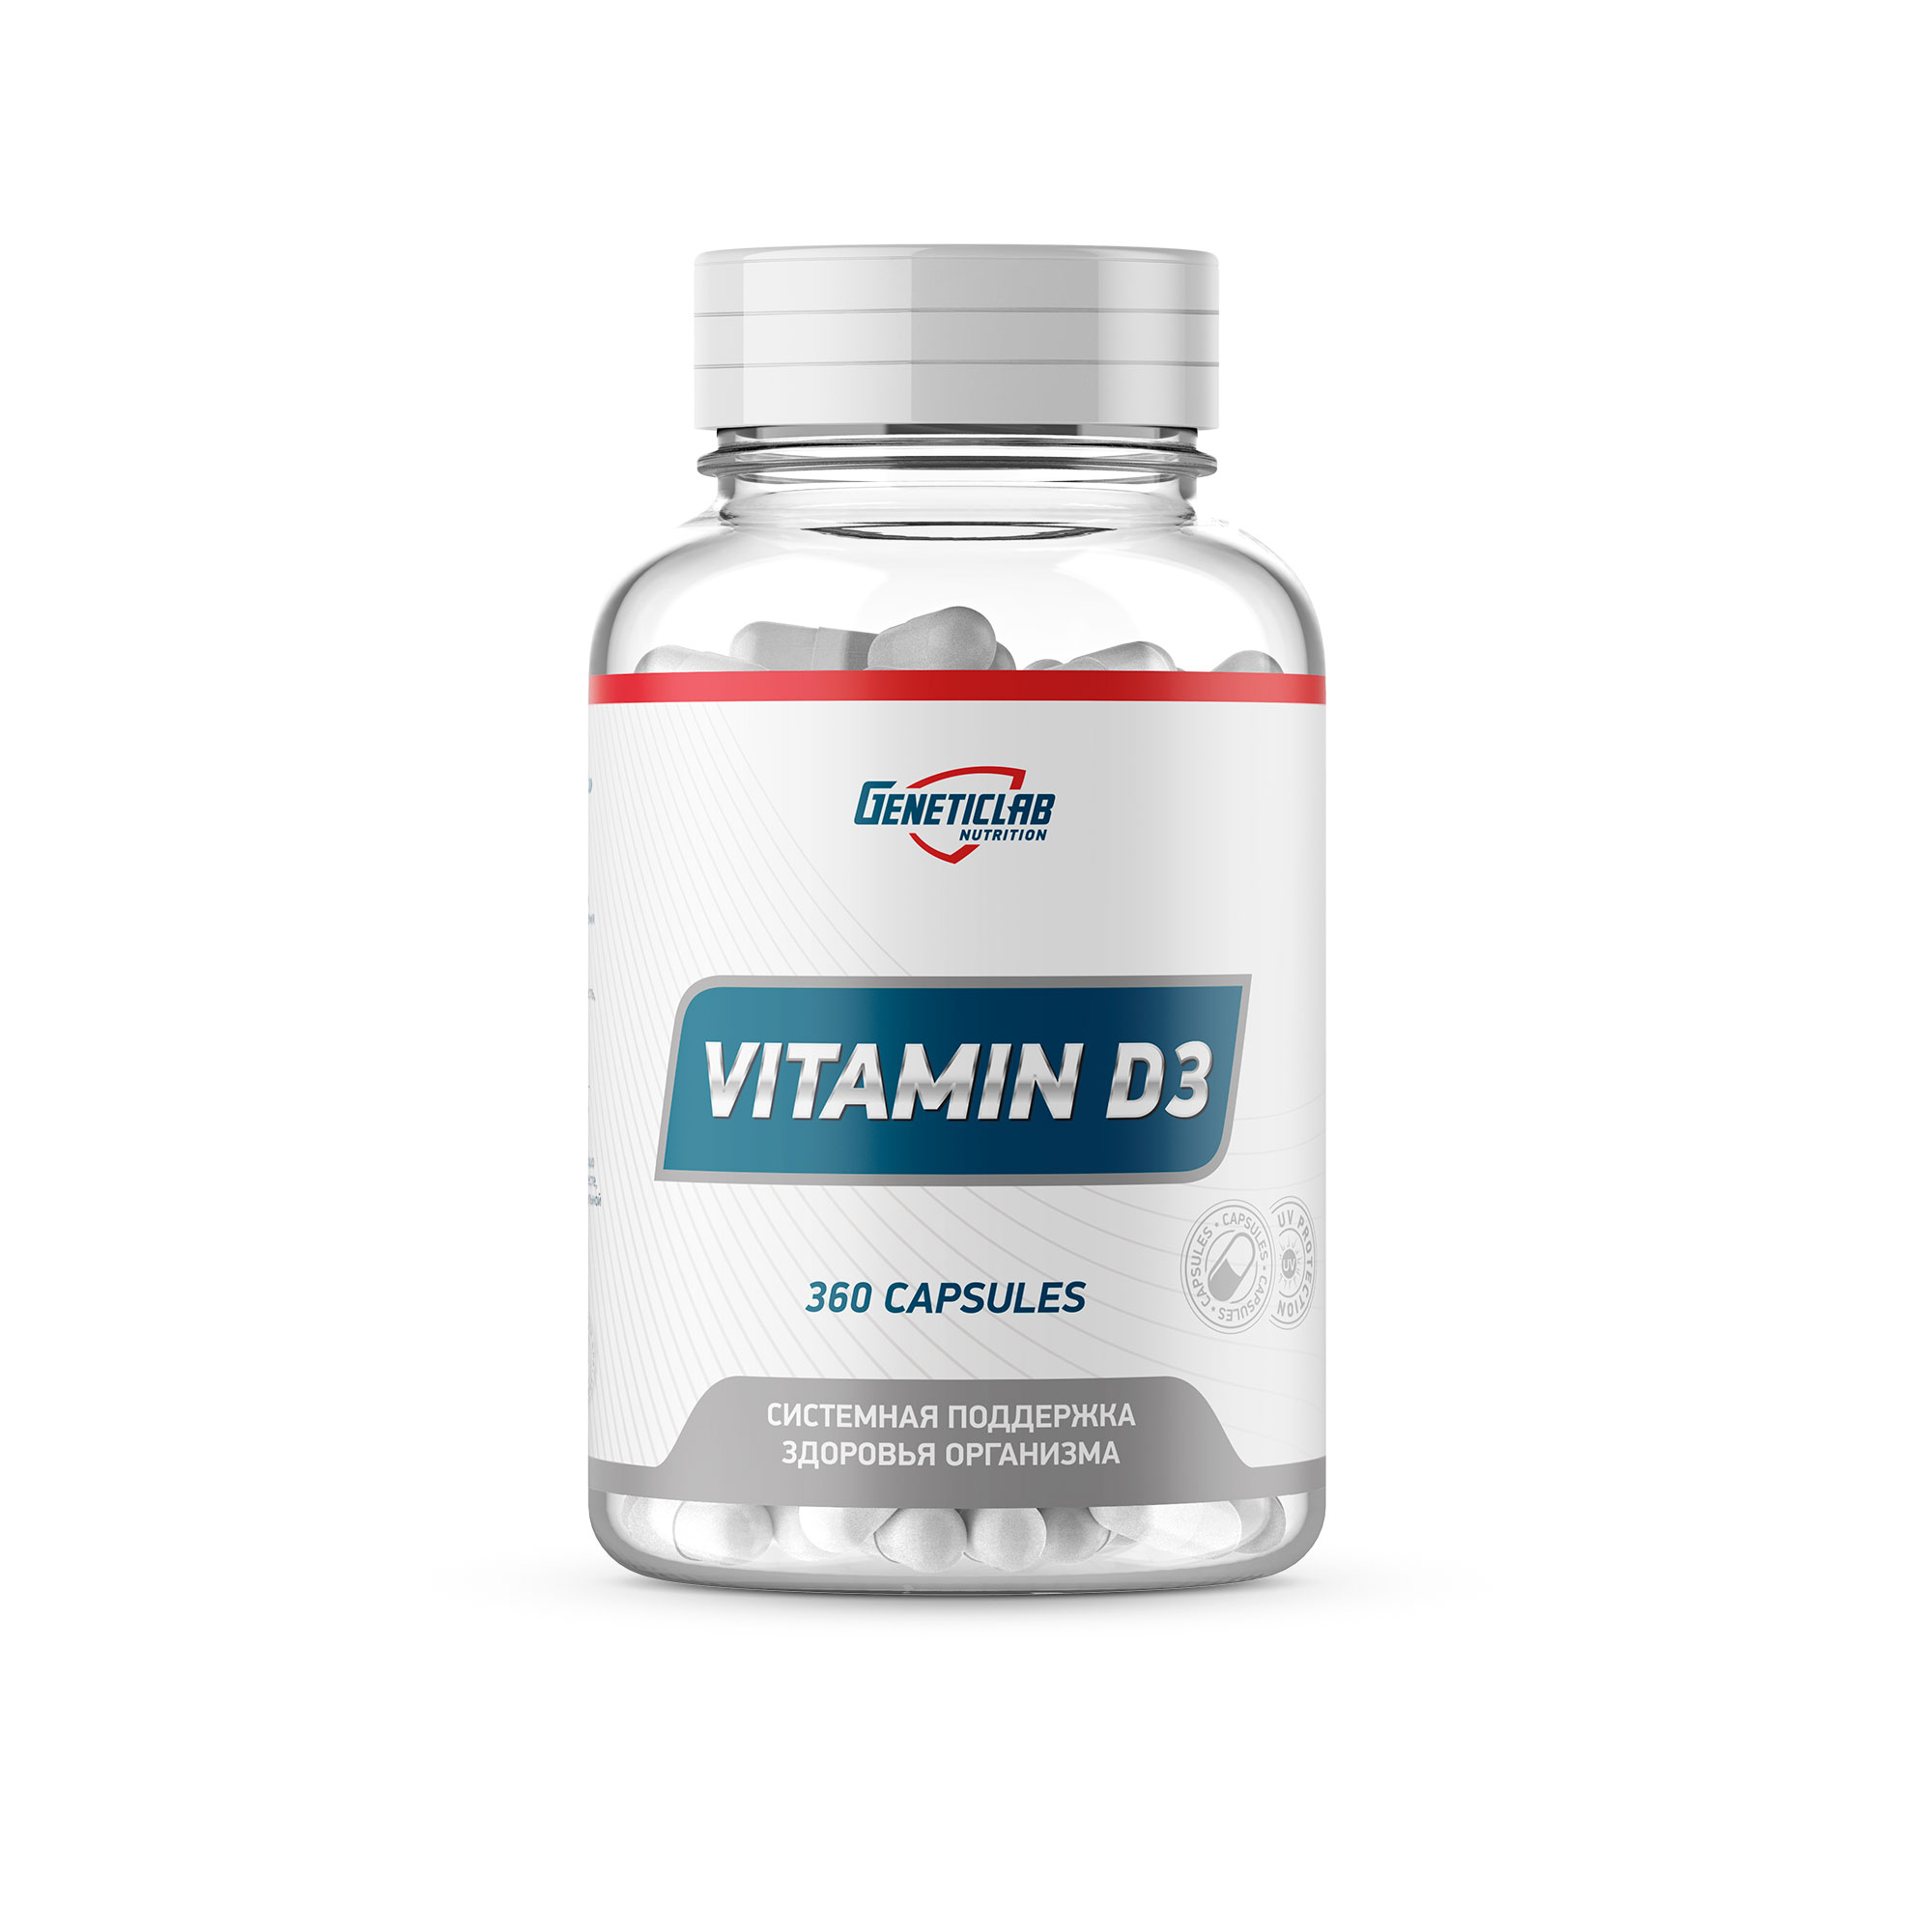 Geneticlab Vitamine D3 360 капсул